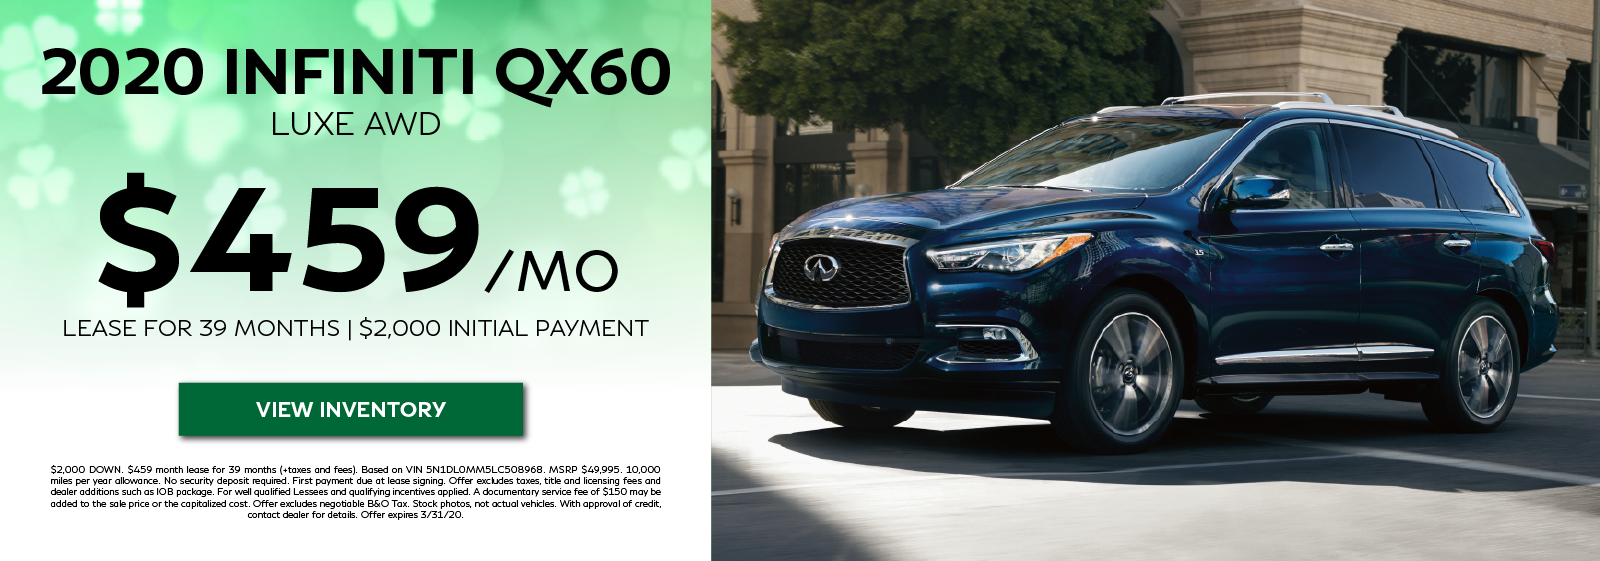 2020 QX60 LUXE AWD - Lease for $459 per month for 39 months. View Inventory